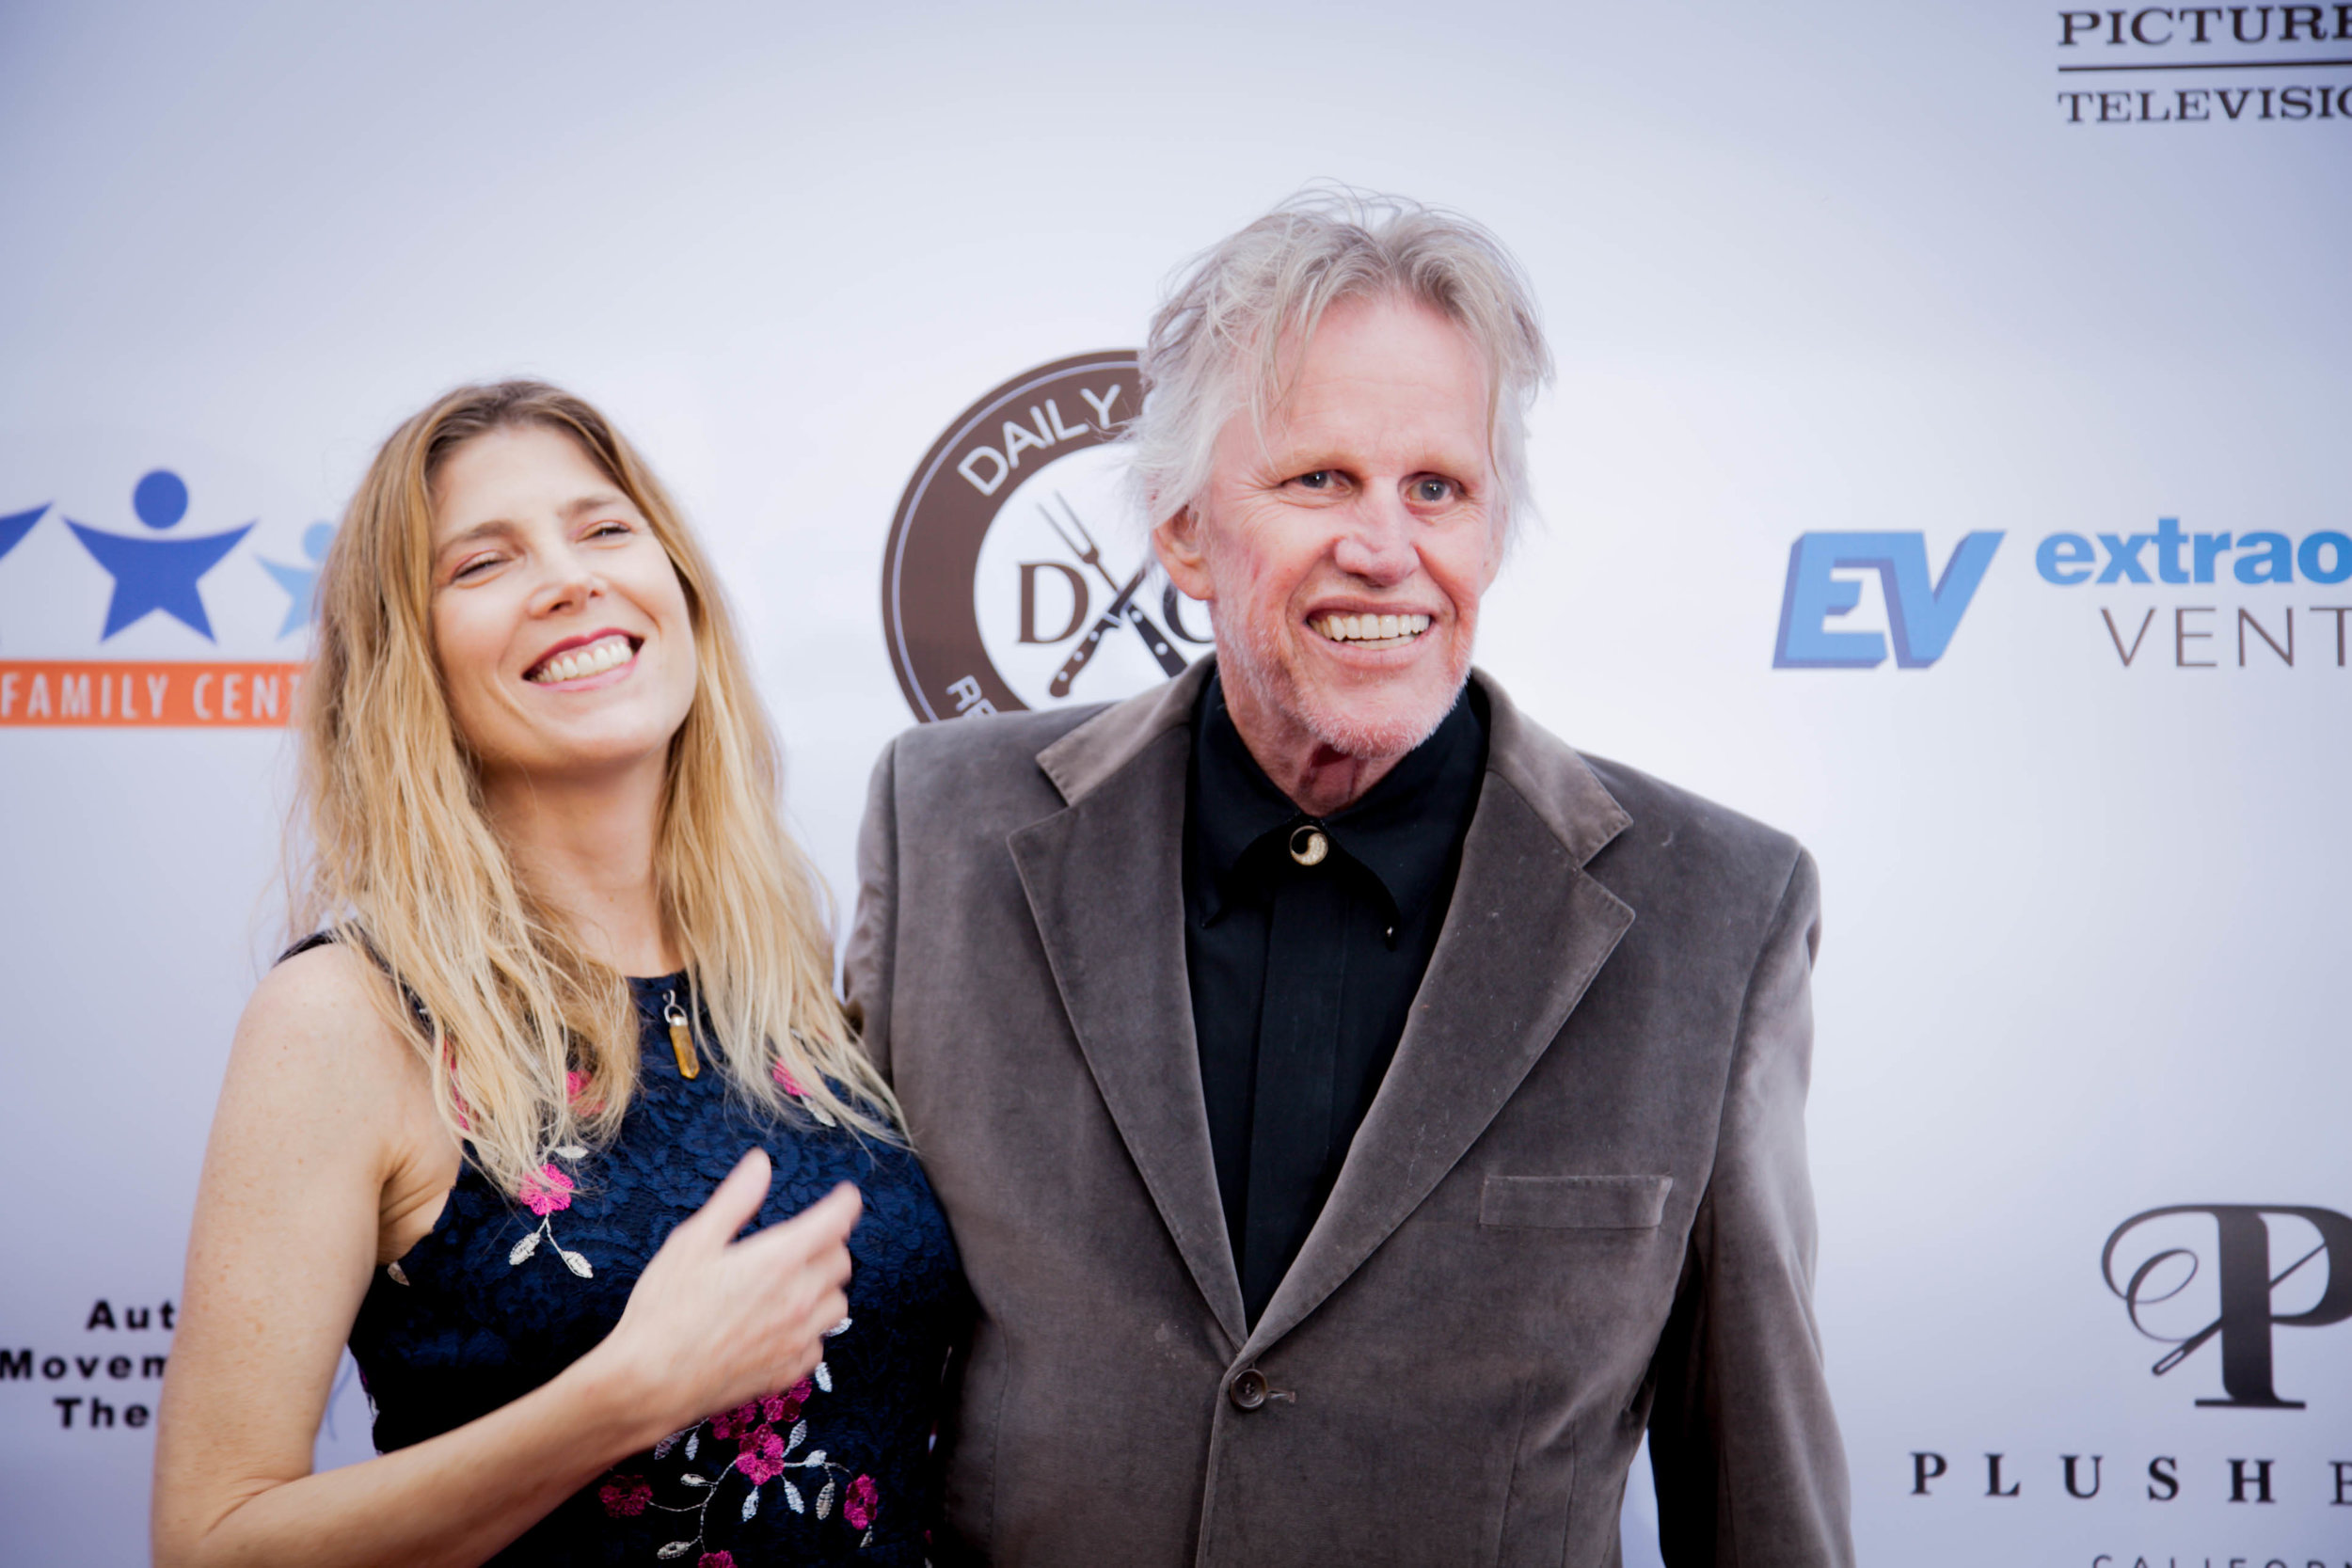 Gary Busey. Photo by Erin Poole for Average Socialite.